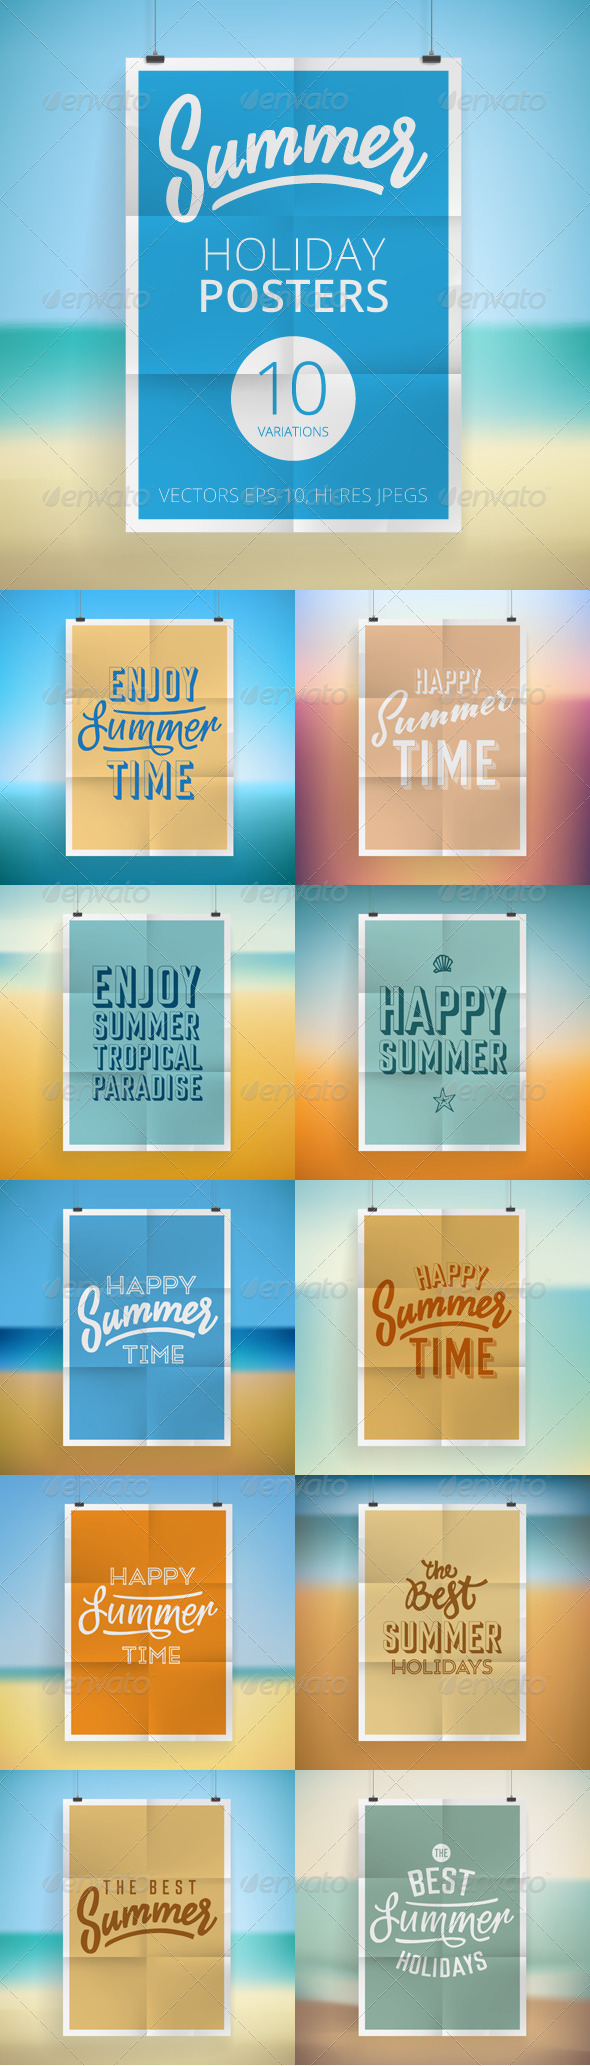 GraphicRiver Summer Holiday Posters 8093976